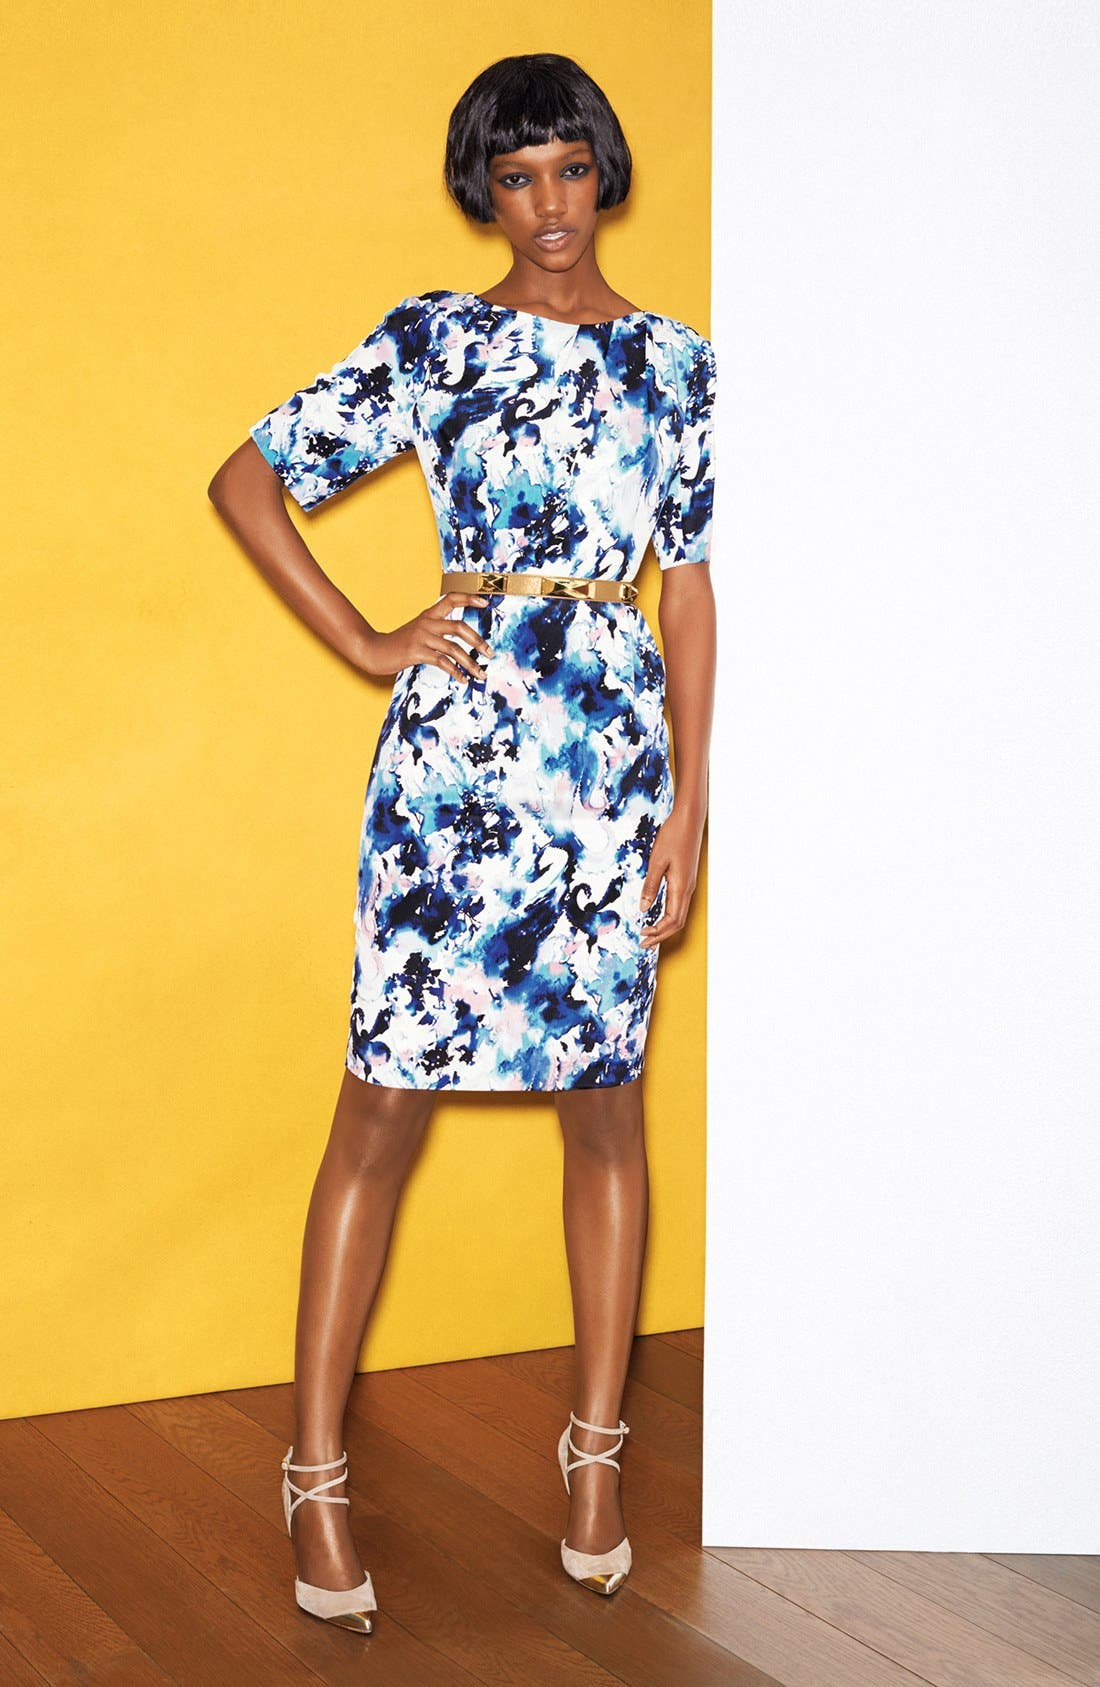 Main Image - St. John Collection Dress & Accessories